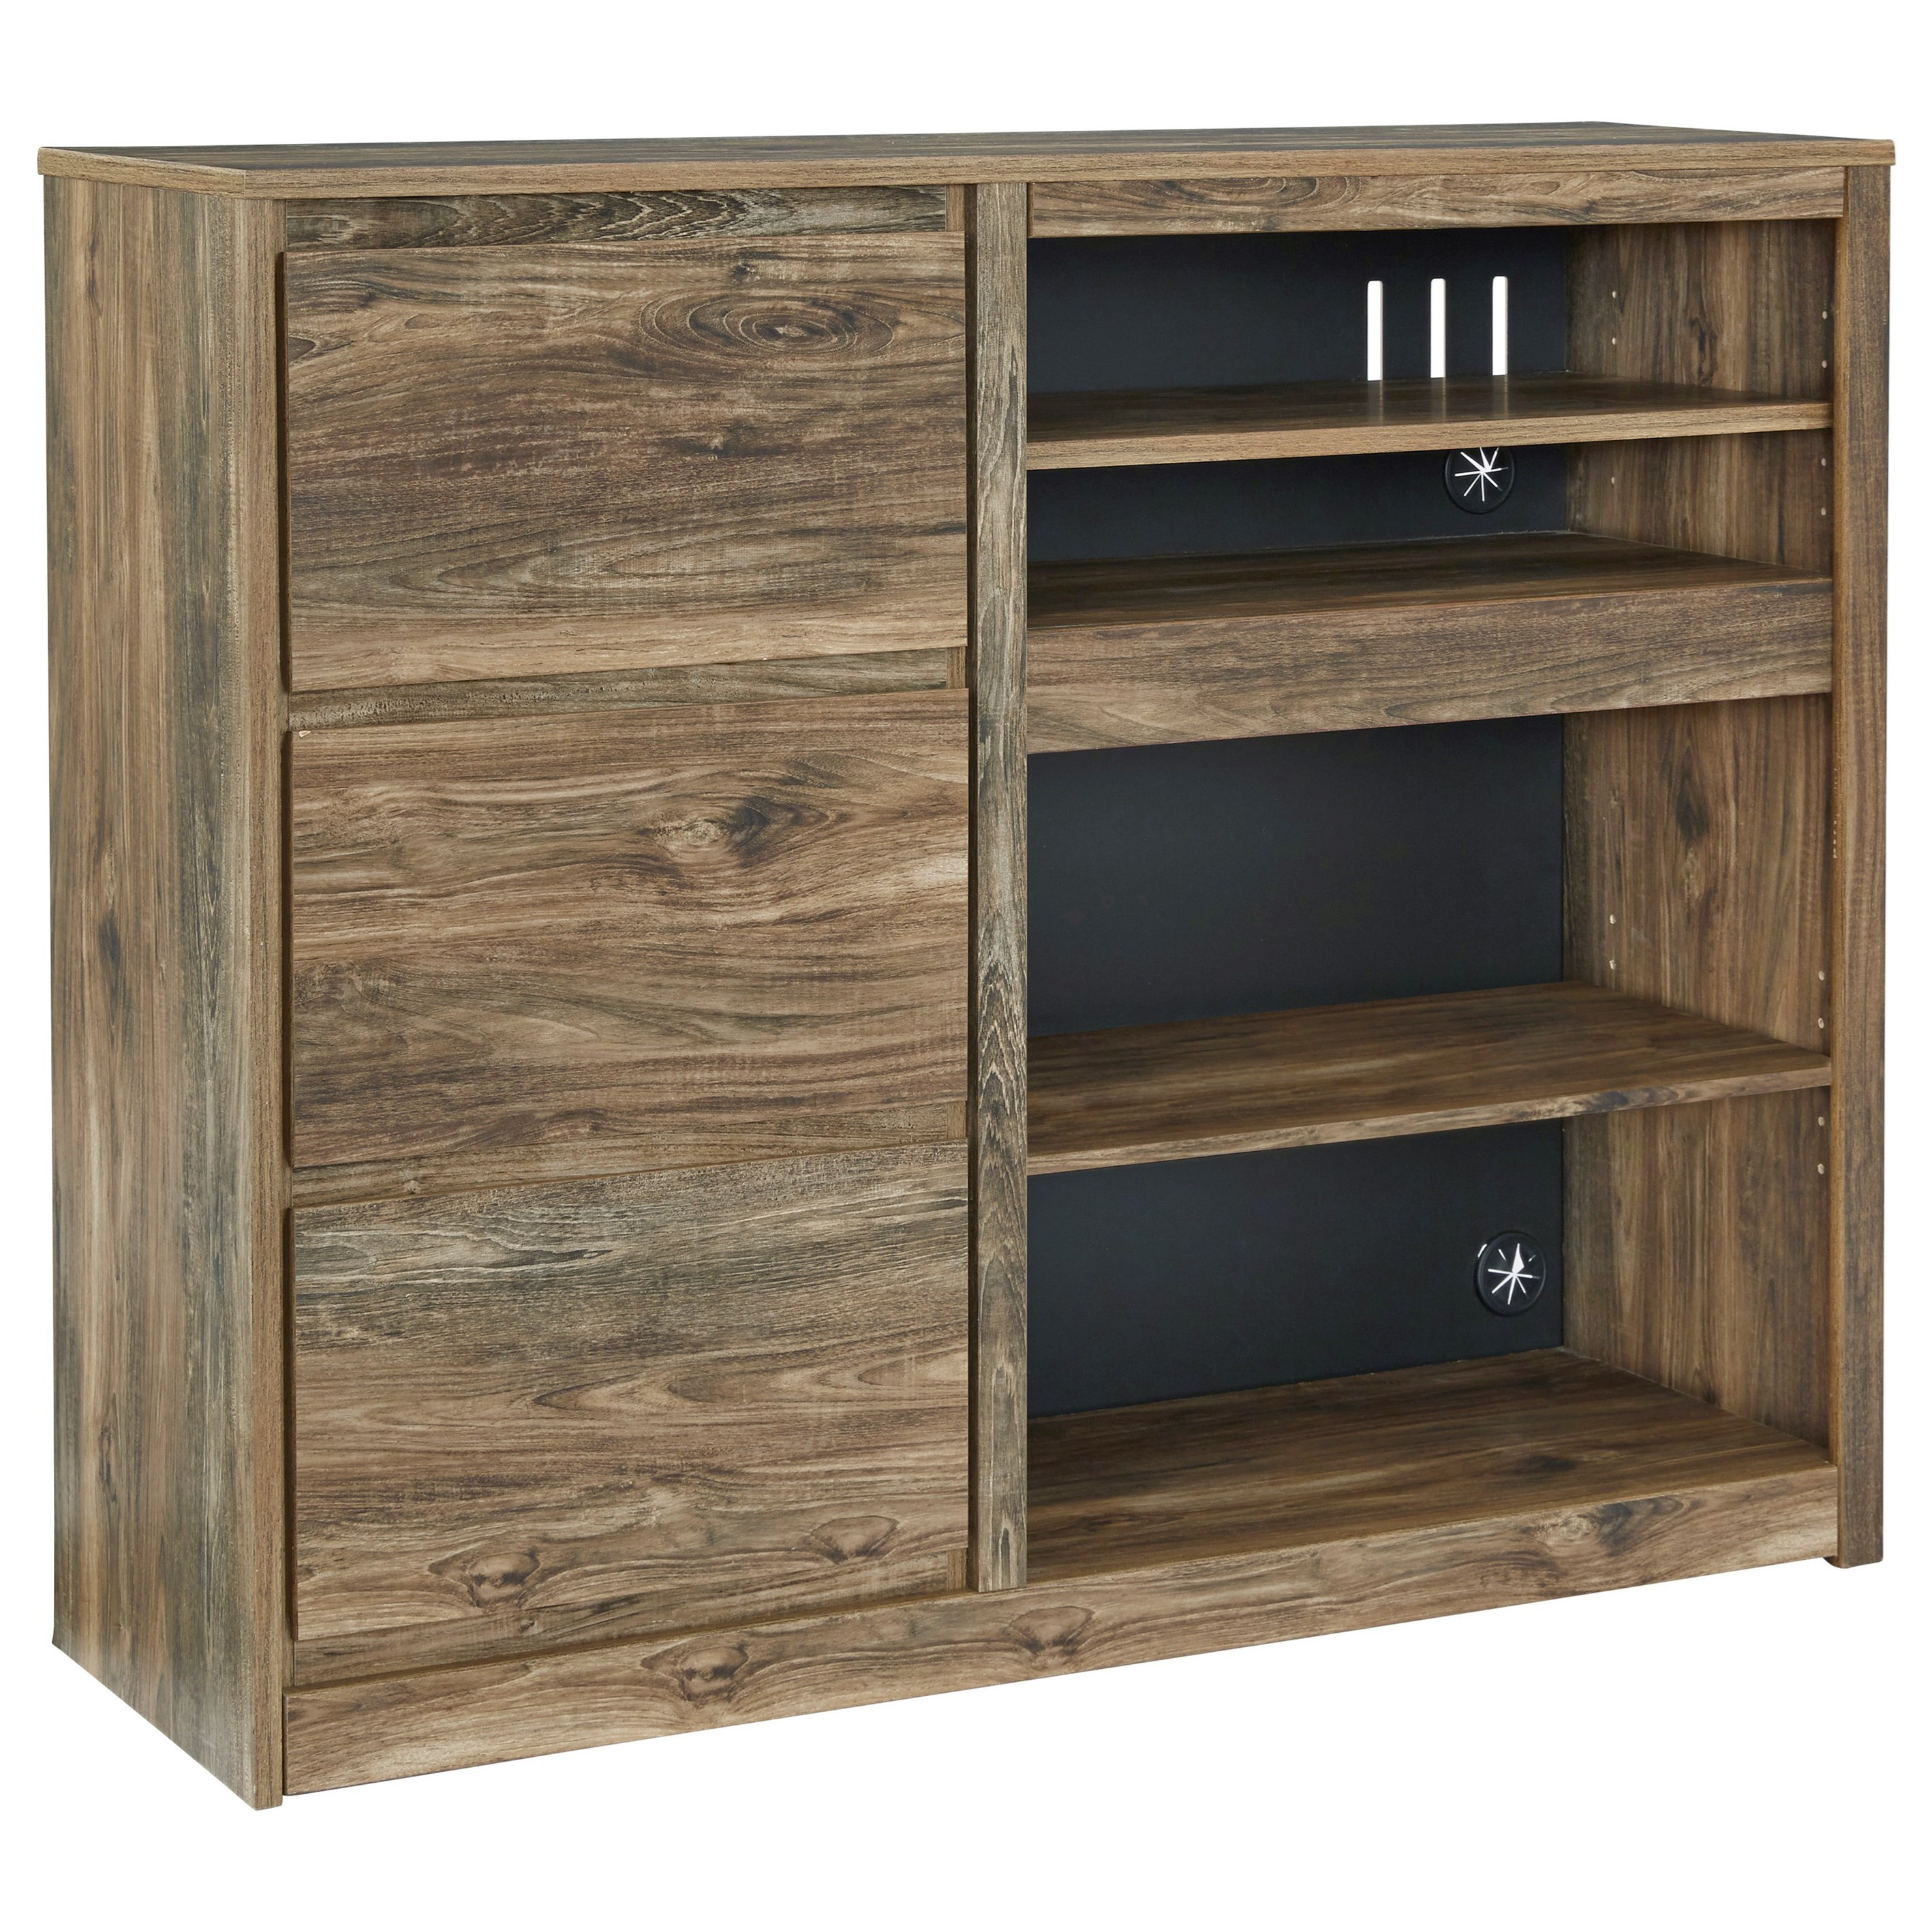 Rusthaven Media Chest by Signature Design at Fisher Home Furnishings